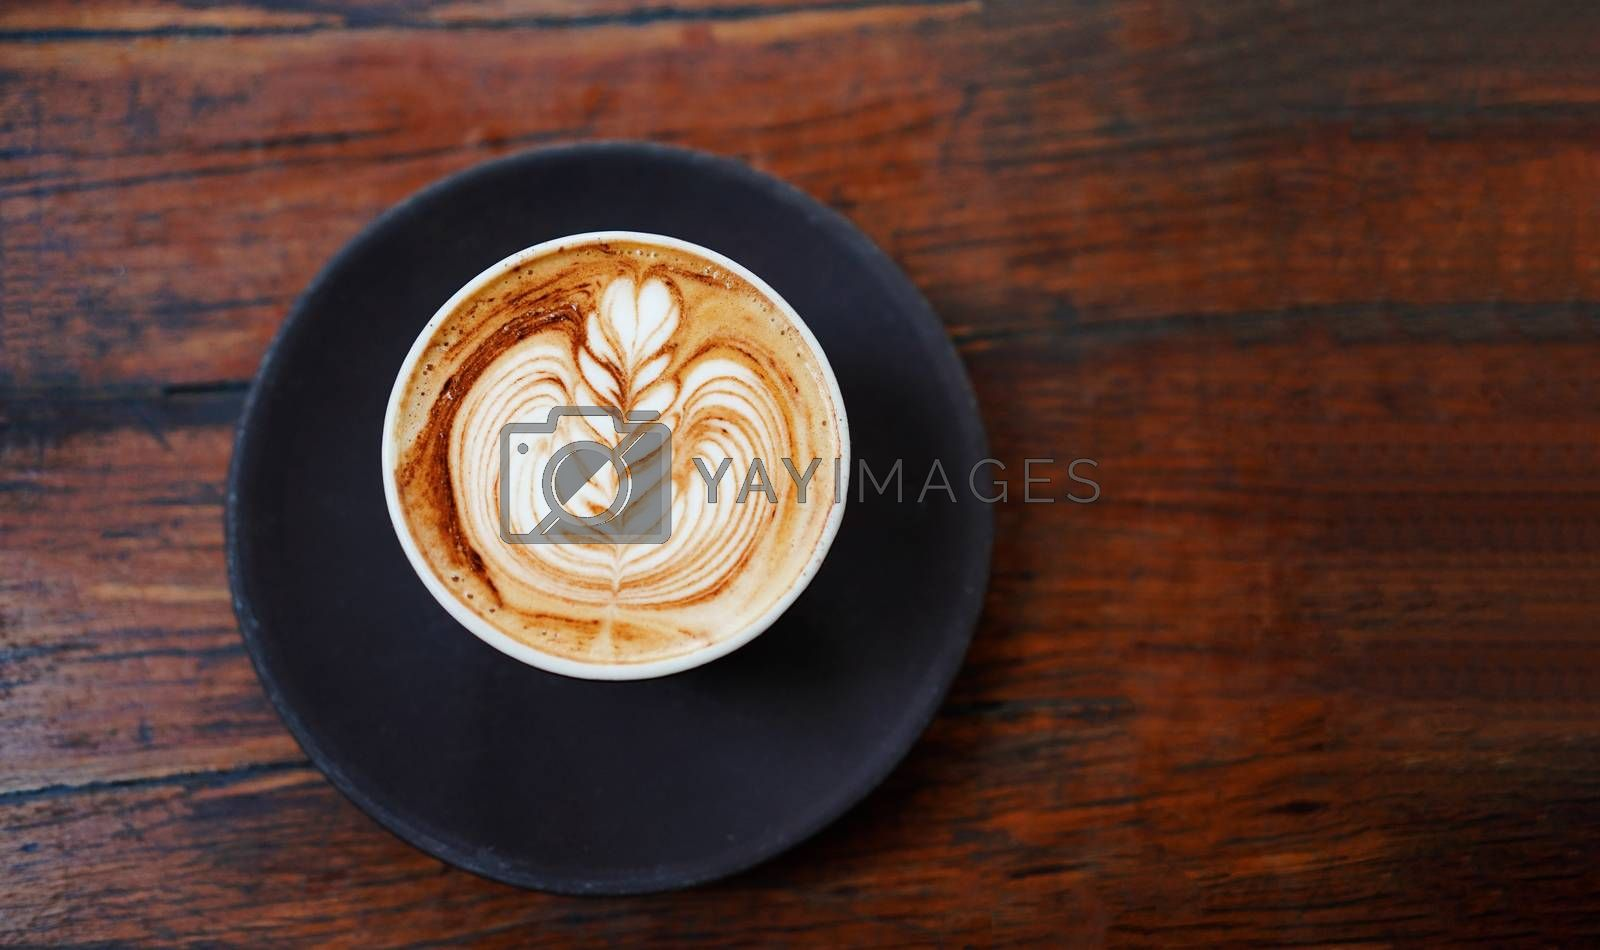 Royalty free image of Top view of hot latte or cappuccino coffee on rustic wooden tabl by nuchylee